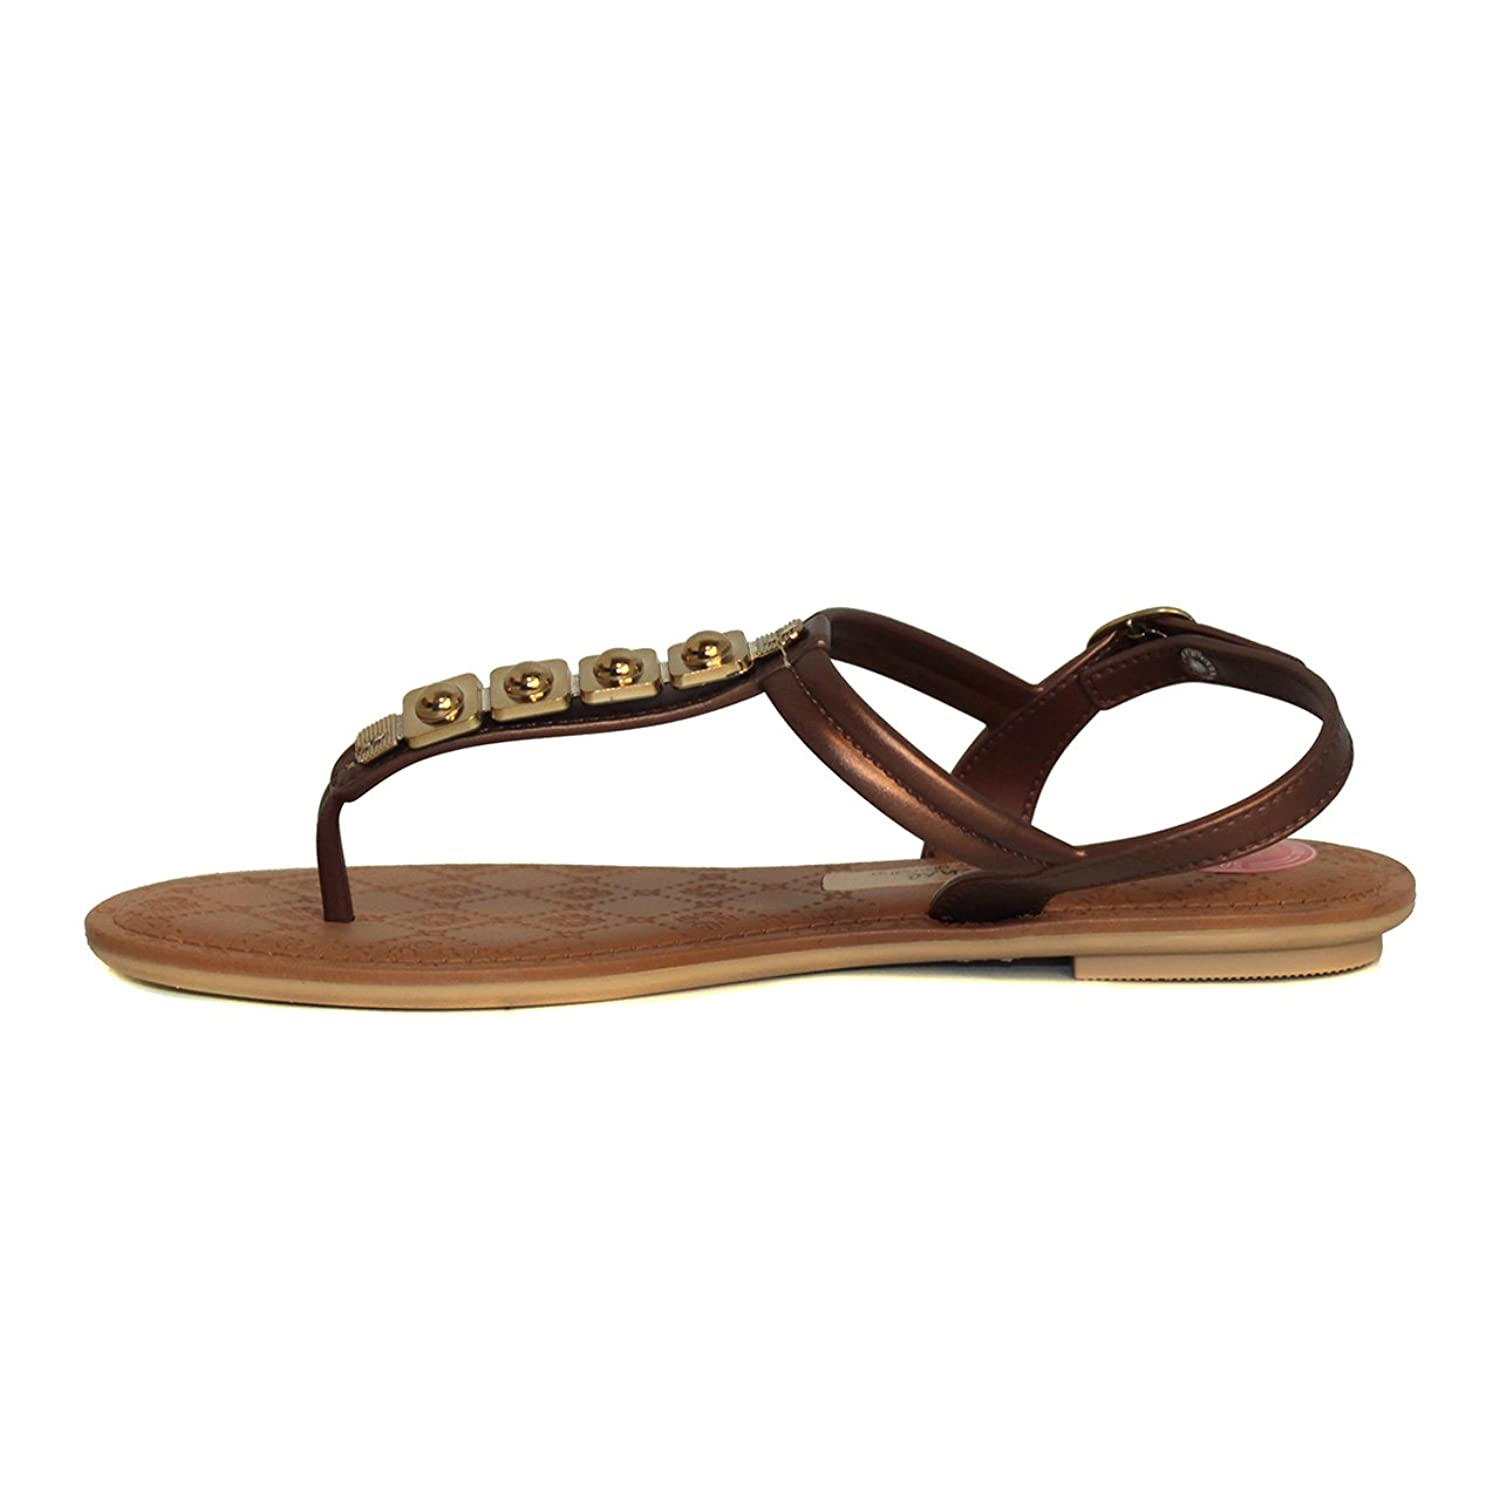 Grendha New Sense Jewel Flip Flops Sandals T-Bar Strap Brazilian EU36-41 3-8:  Amazon.co.uk: Shoes & Bags